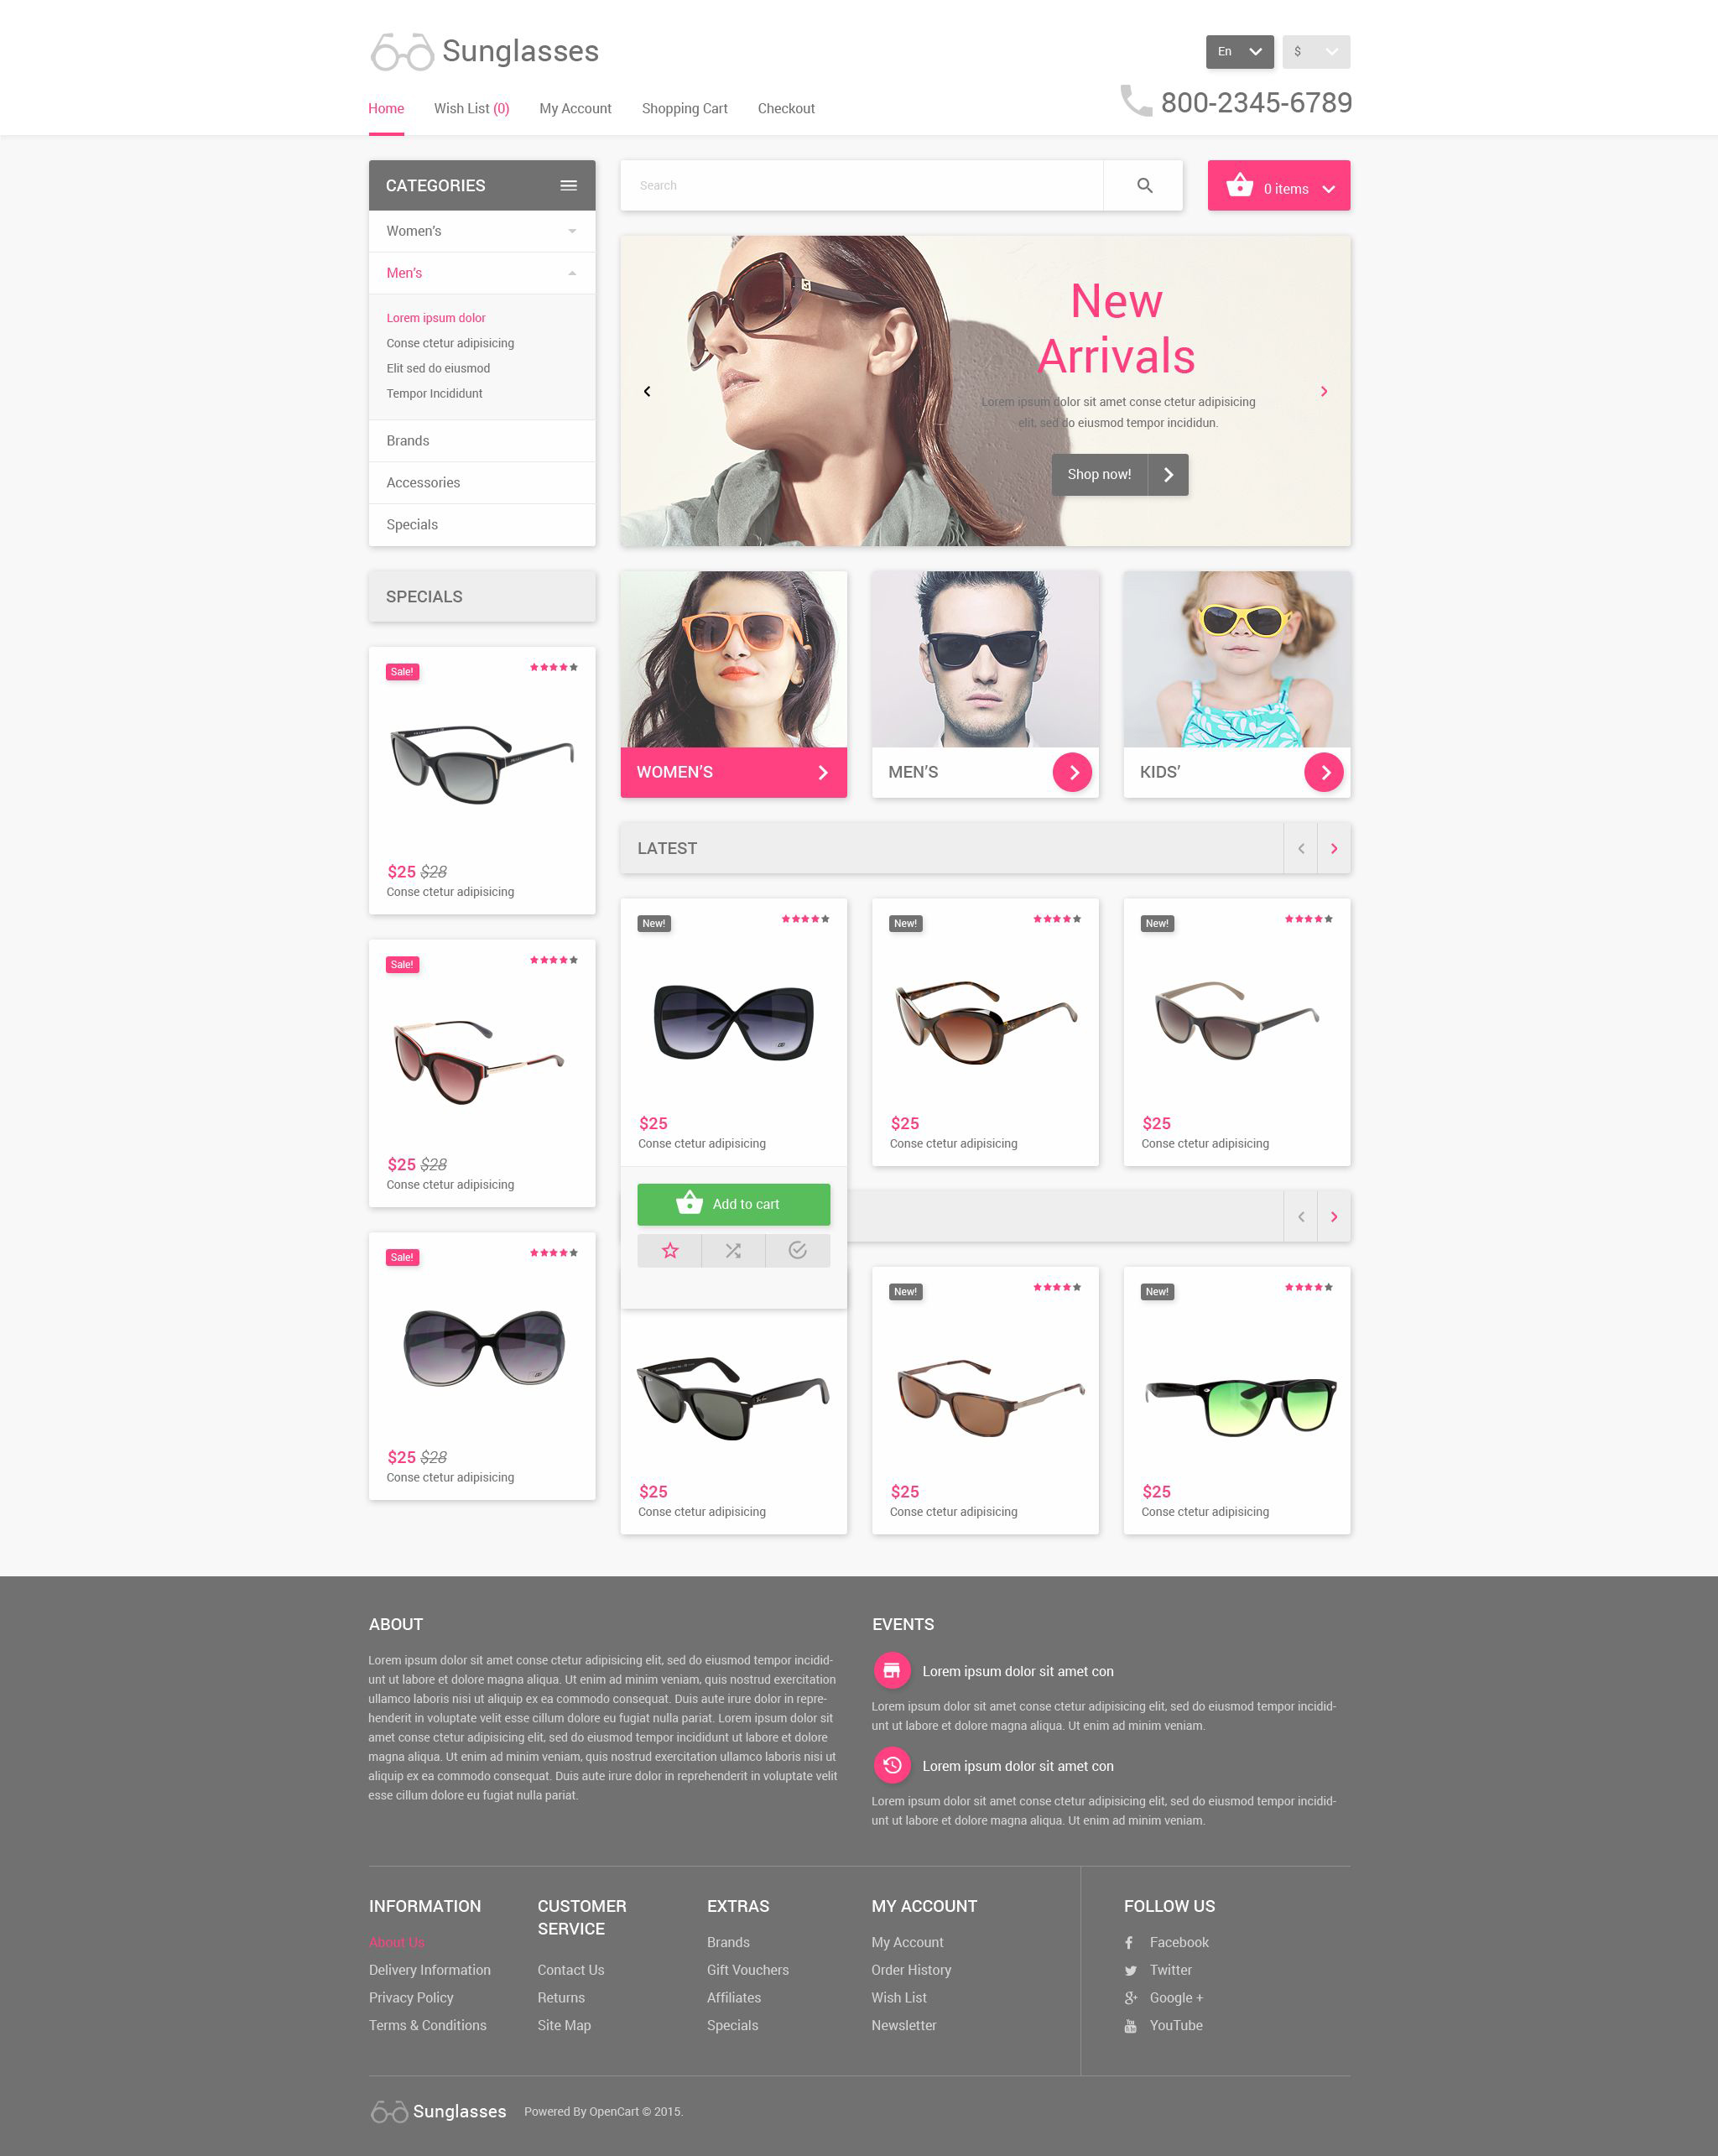 The Sunglasses OpenCart Design 53660, one of the best OpenCart templates of its kind (fashion, most popular), also known as sunglasses OpenCart template, sun OpenCart template, glasses OpenCart template, accessories OpenCart template, watches OpenCart template, umbrellas OpenCart template, wallets OpenCart template, clothing OpenCart template, belts OpenCart template, jewelry OpenCart template, necklaces OpenCart template, rings OpenCart template, earrings OpenCart template, eyewear OpenCart template, dresses OpenCart template, shoes OpenCart template, sandals OpenCart template, handbags OpenCart template, hair OpenCart template, carves OpenCart template, hats and related with sunglasses, sun, glasses, accessories, watches, umbrellas, wallets, clothing, belts, jewelry, necklaces, rings, earrings, eyewear, dresses, shoes, sandals, handbags, hair, carves, hats, etc.